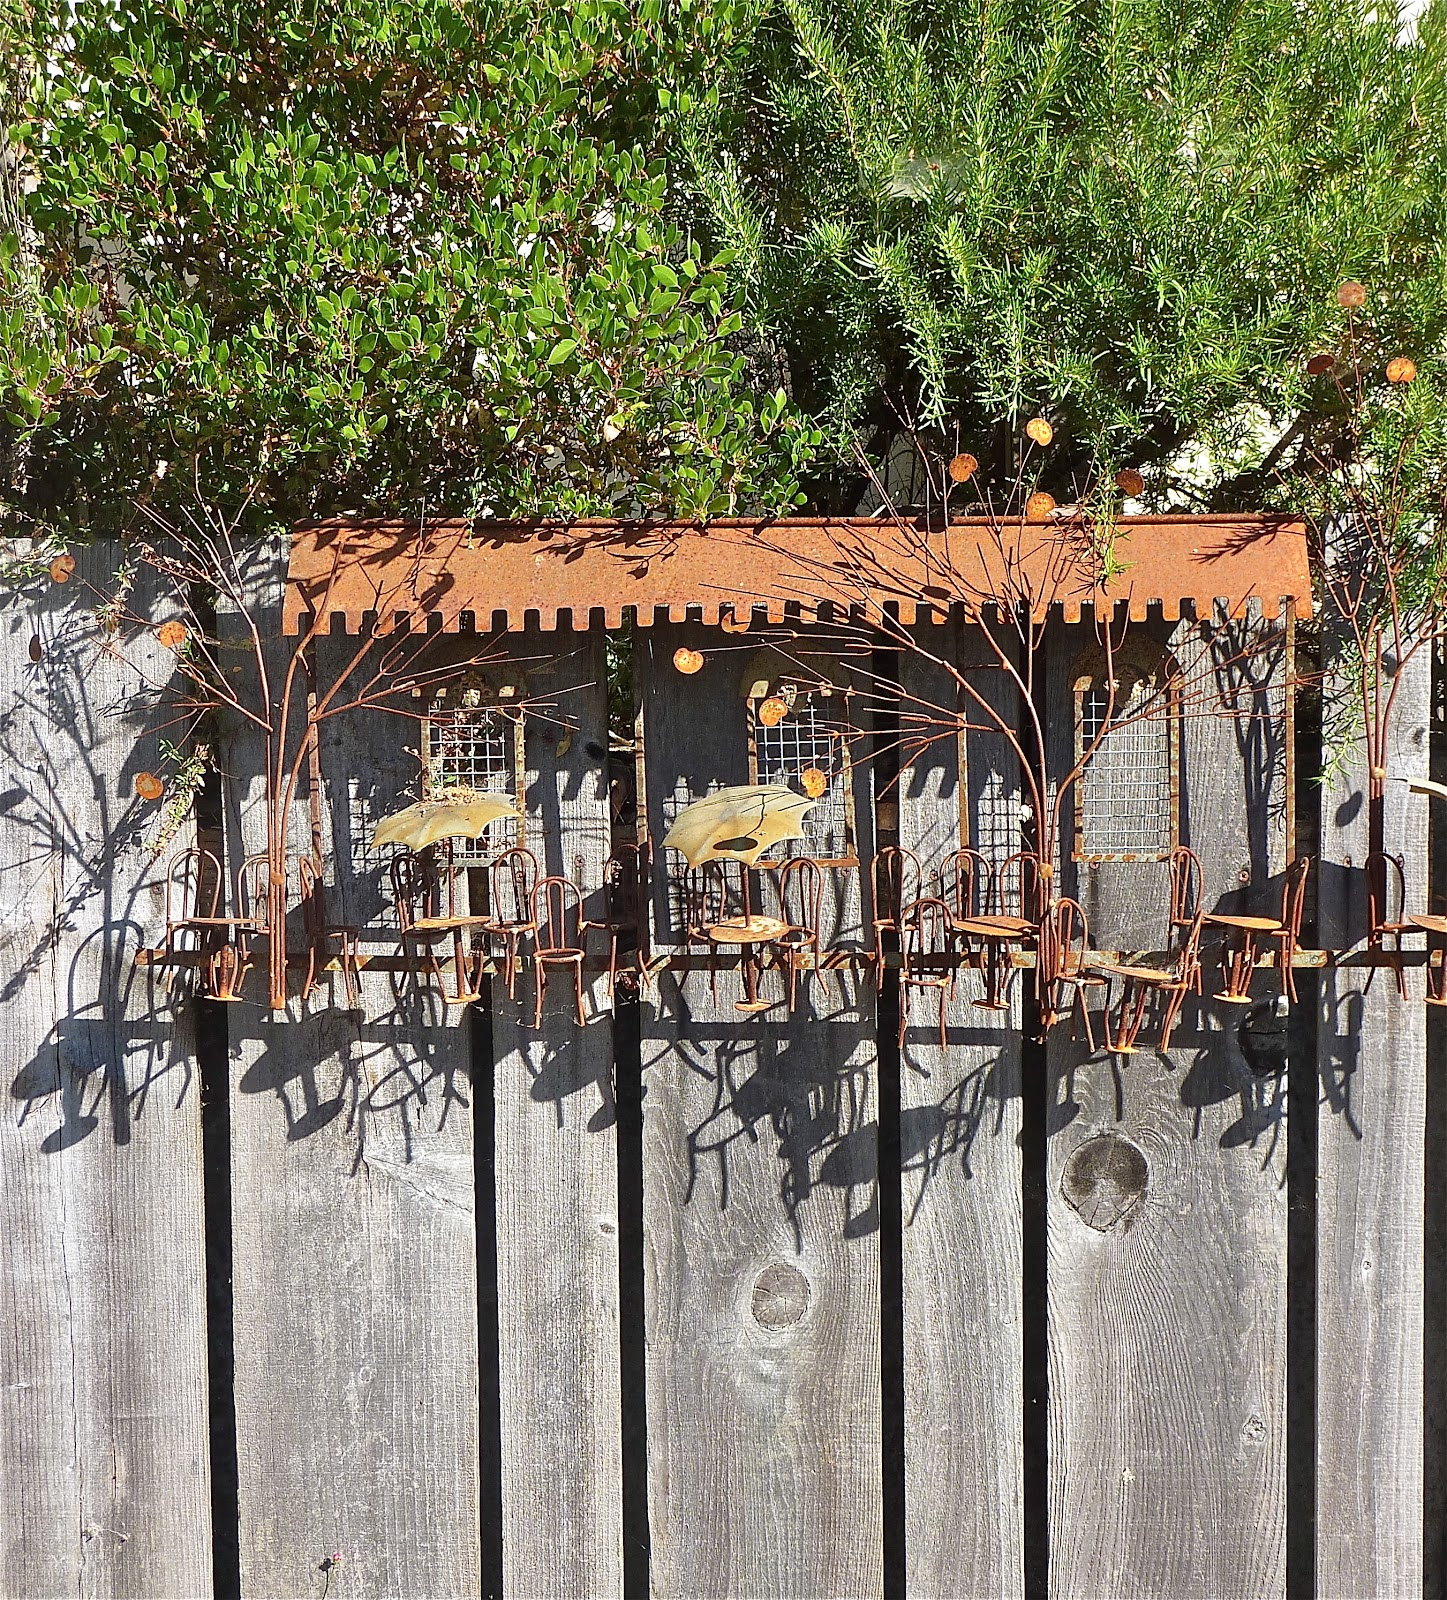 BluesteinDesign/TravelTime: Good Fences Make Good Neighbors